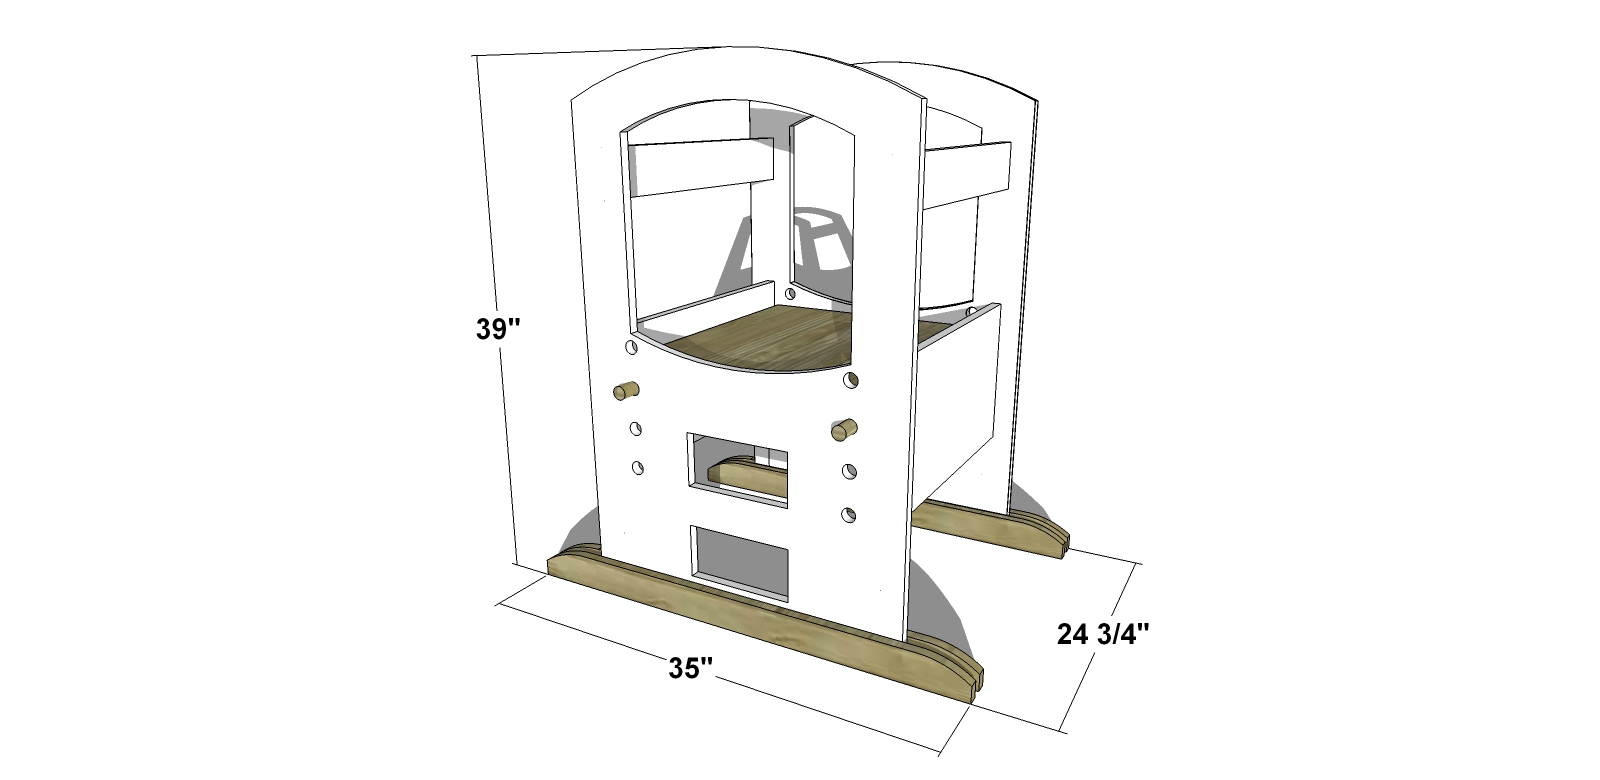 You Can Build This! The Design Confidential Free Woodworking Plans to Build a Toddler Learning Tower